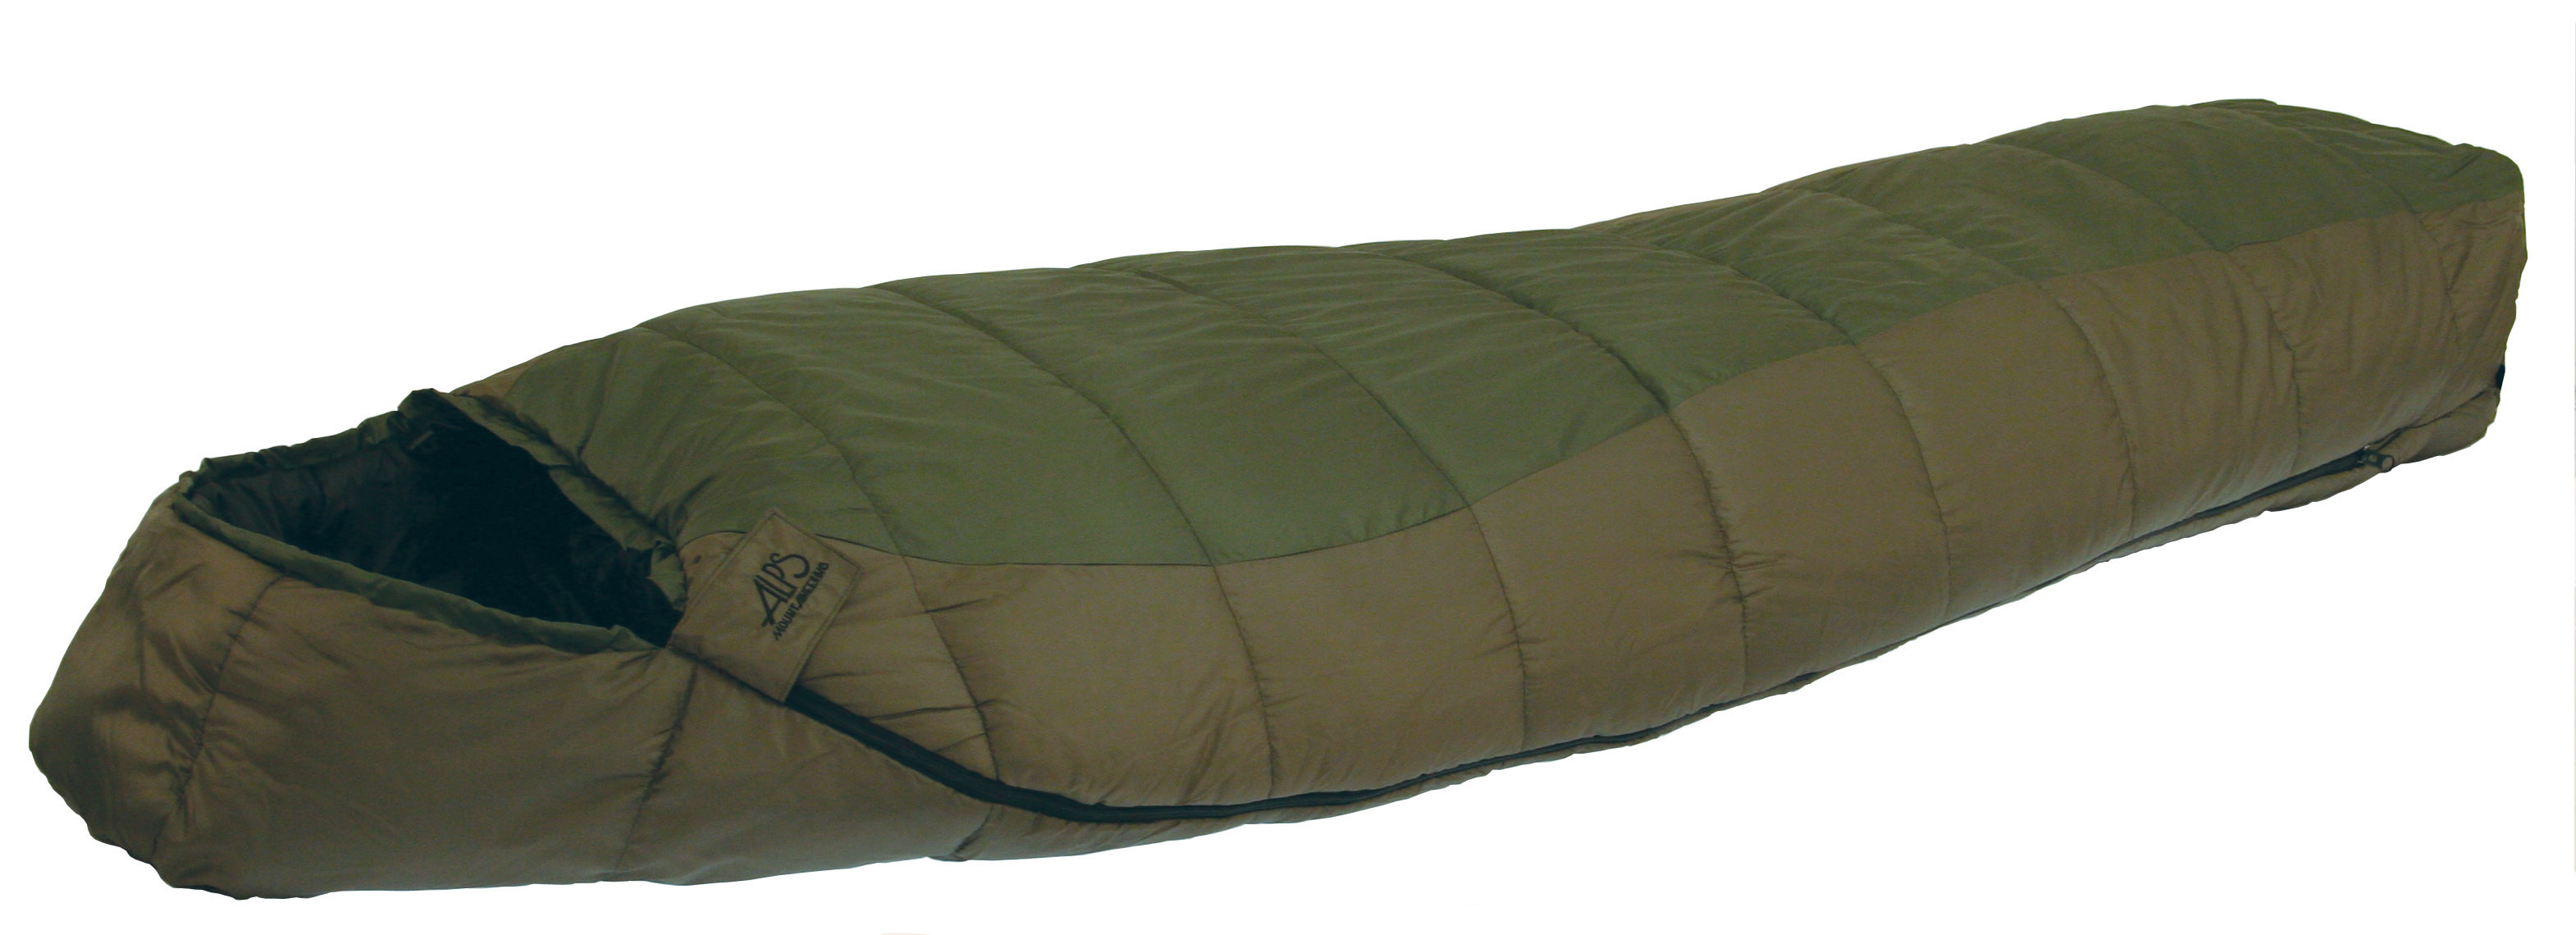 "Camp and Hike The Crescent Lake series sleeping bags are made with Techloft+ insulation. Techloft+ Insulation consists of multi-hole staple-length micro-denier fibers that have a siliconized finish for maximum insulation, loft, and compactness. The Crescent Lake uses a 2-layer offset construction, sometimes called a ""bag within a bag."" The contoured hood and mummy shape helps seal up your warmth and keep you warmer. The Crescent Lake is a great backpacking sleeping bag to take along on your hikes that won't take up all the space in your pack.Key Features of the Alps Crescent Lake 0 Wide Sleeping Bag: TechLoft+ - 2 Layer Offset Insulated Chest Baffle Zipper Baffle Contoured Hood Standard Stuff Sack Included Outer Material: 210T Polyester Outer Color: Green/Clay Liner Material: 210T Polyester Liner Color: Black Shape: Mummy Zipper: #8 Separating Length: Long Dimensions: 34"" x 86"" Fill Weight: 72 oz Total Weight: 6 lb 2 oz - $79.95"